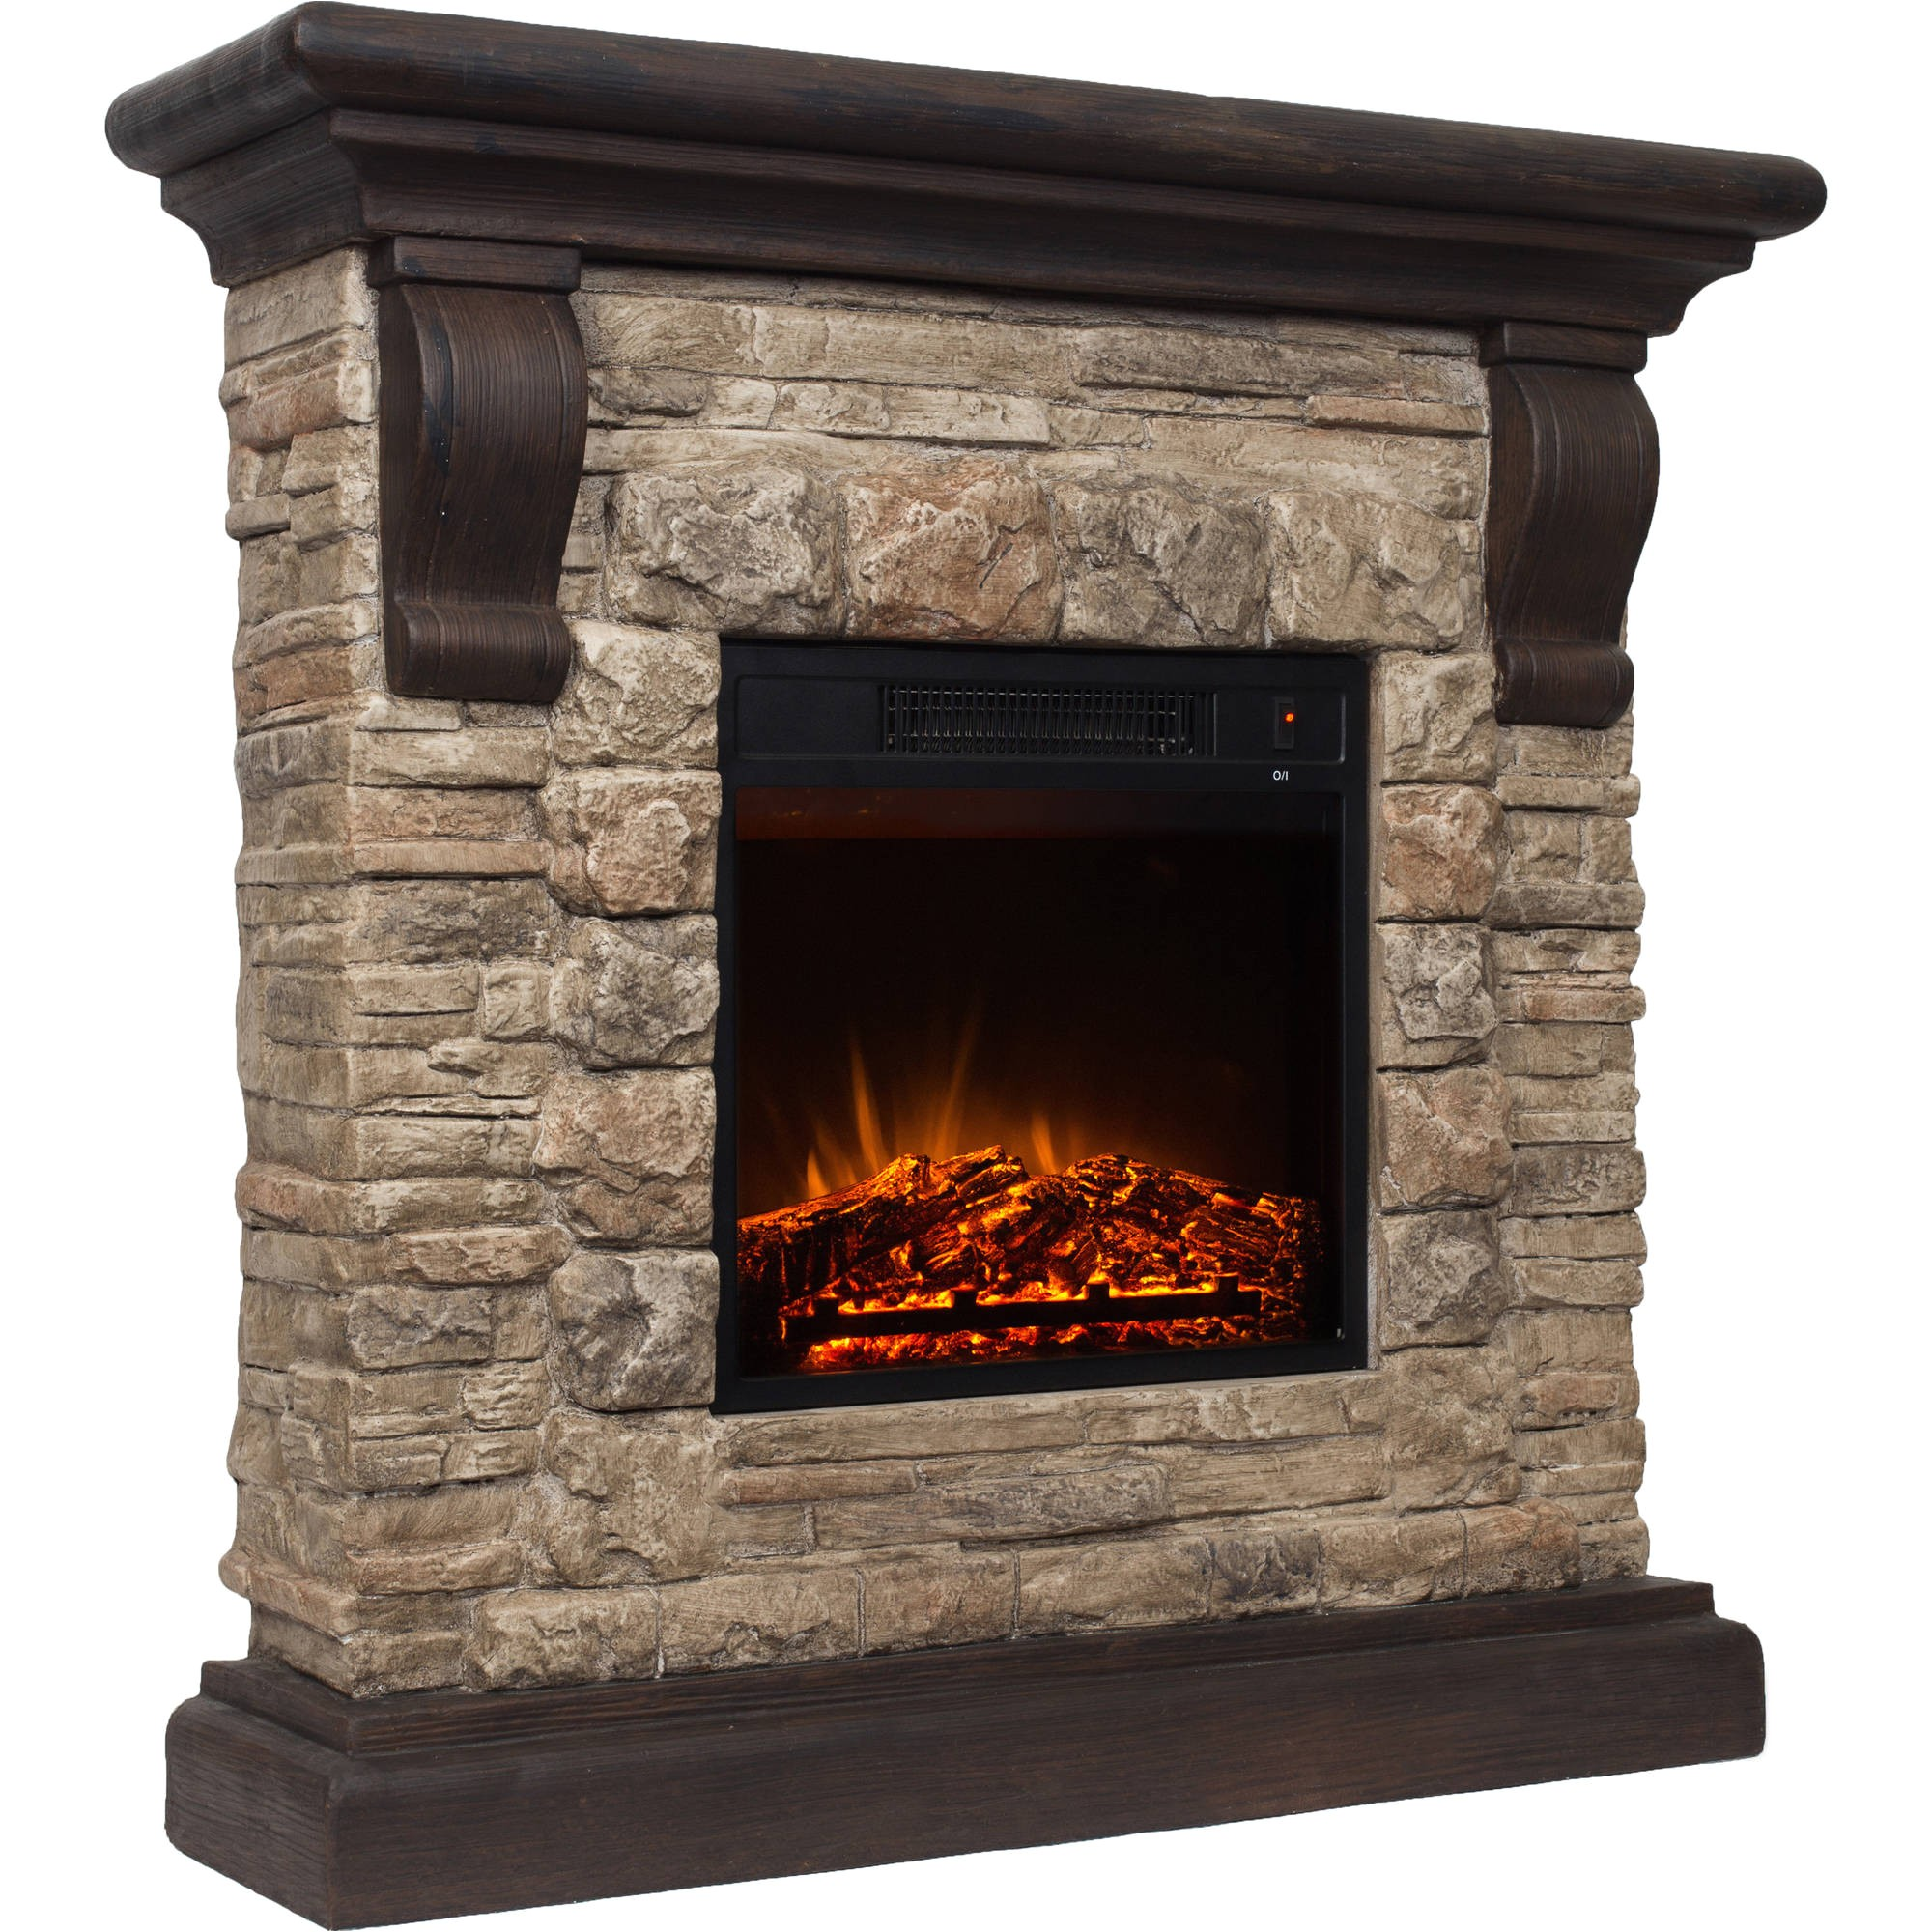 decor flame electric 41 with fireplace 1500w mantle includes remote mmp1800r 41